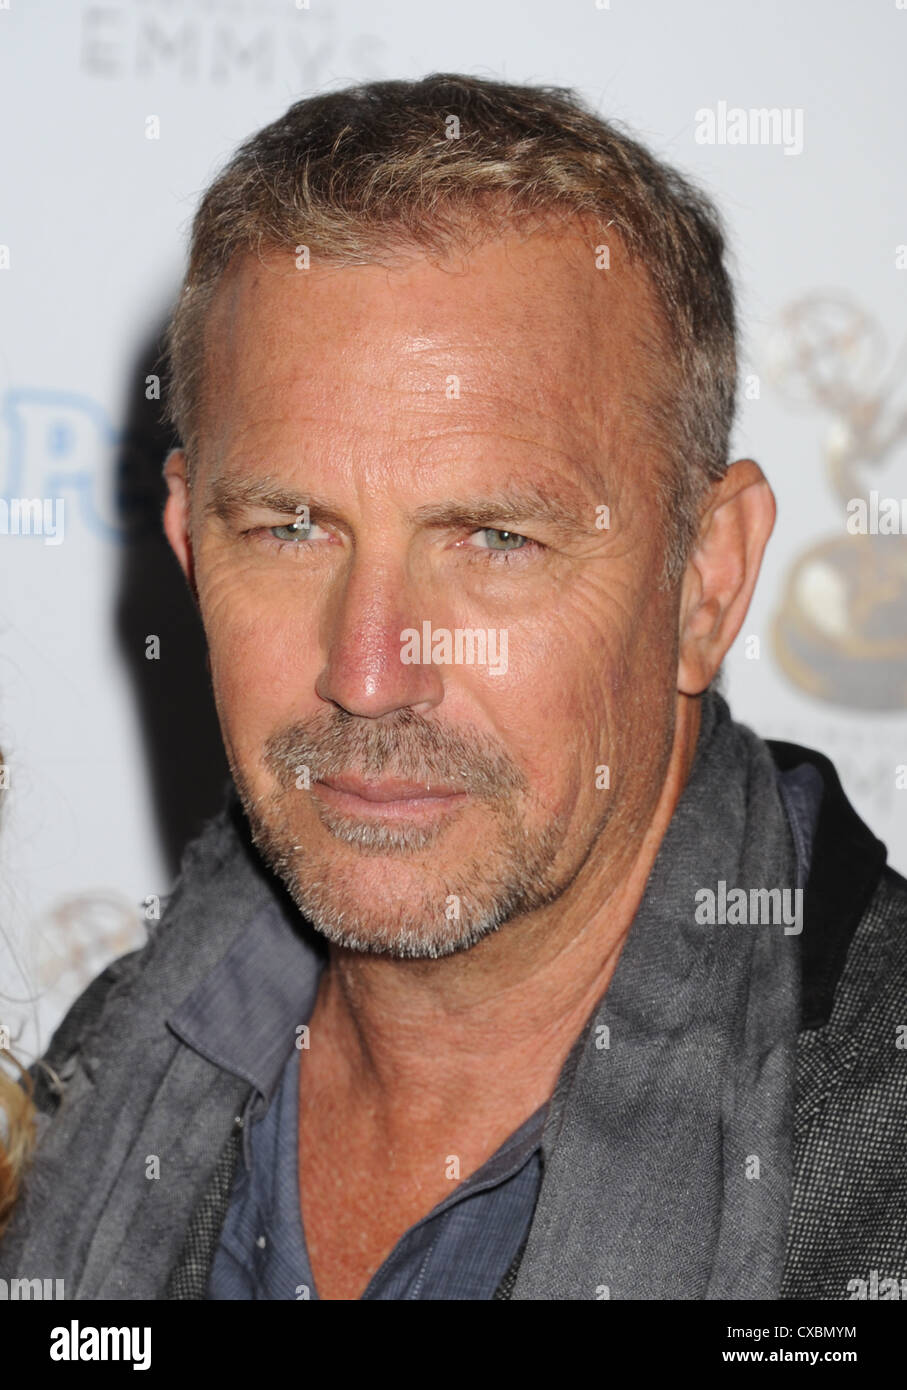 American actor, producer and director Costner Kevin 42